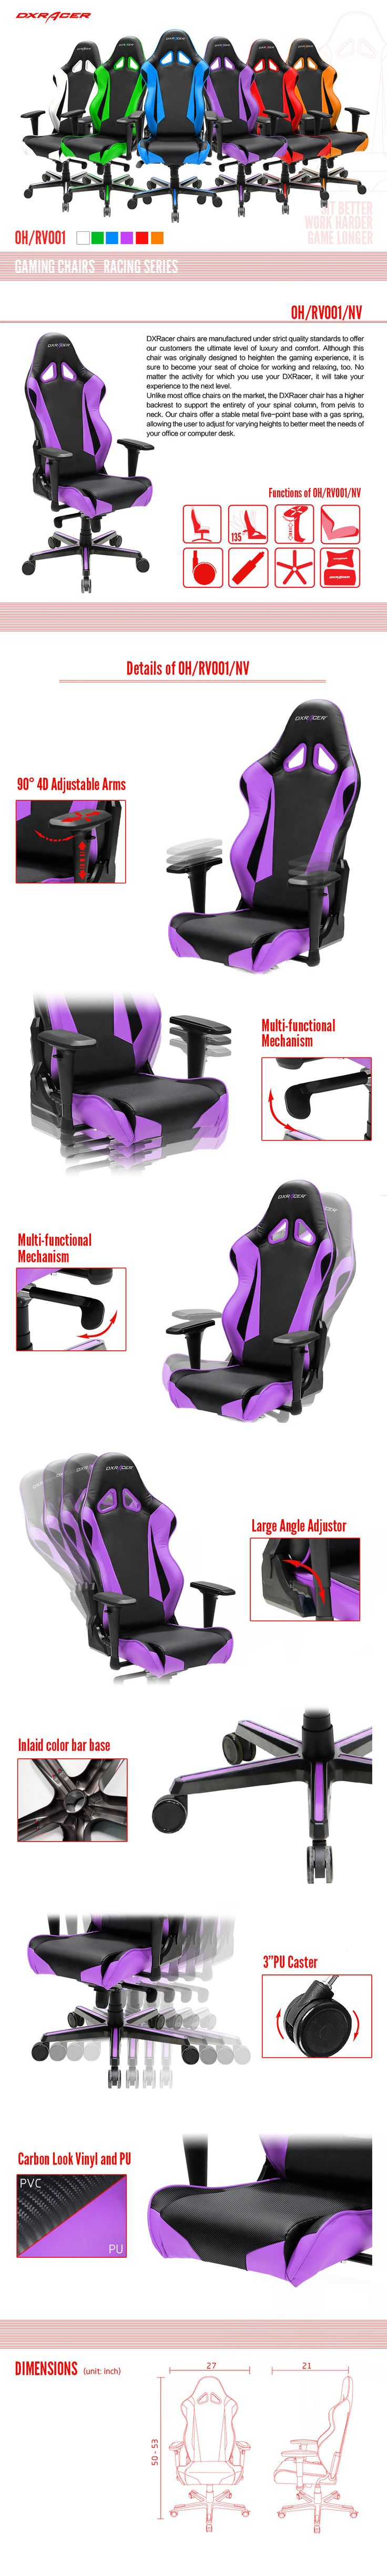 Best 25 Gaming desk chair ideas on Pinterest